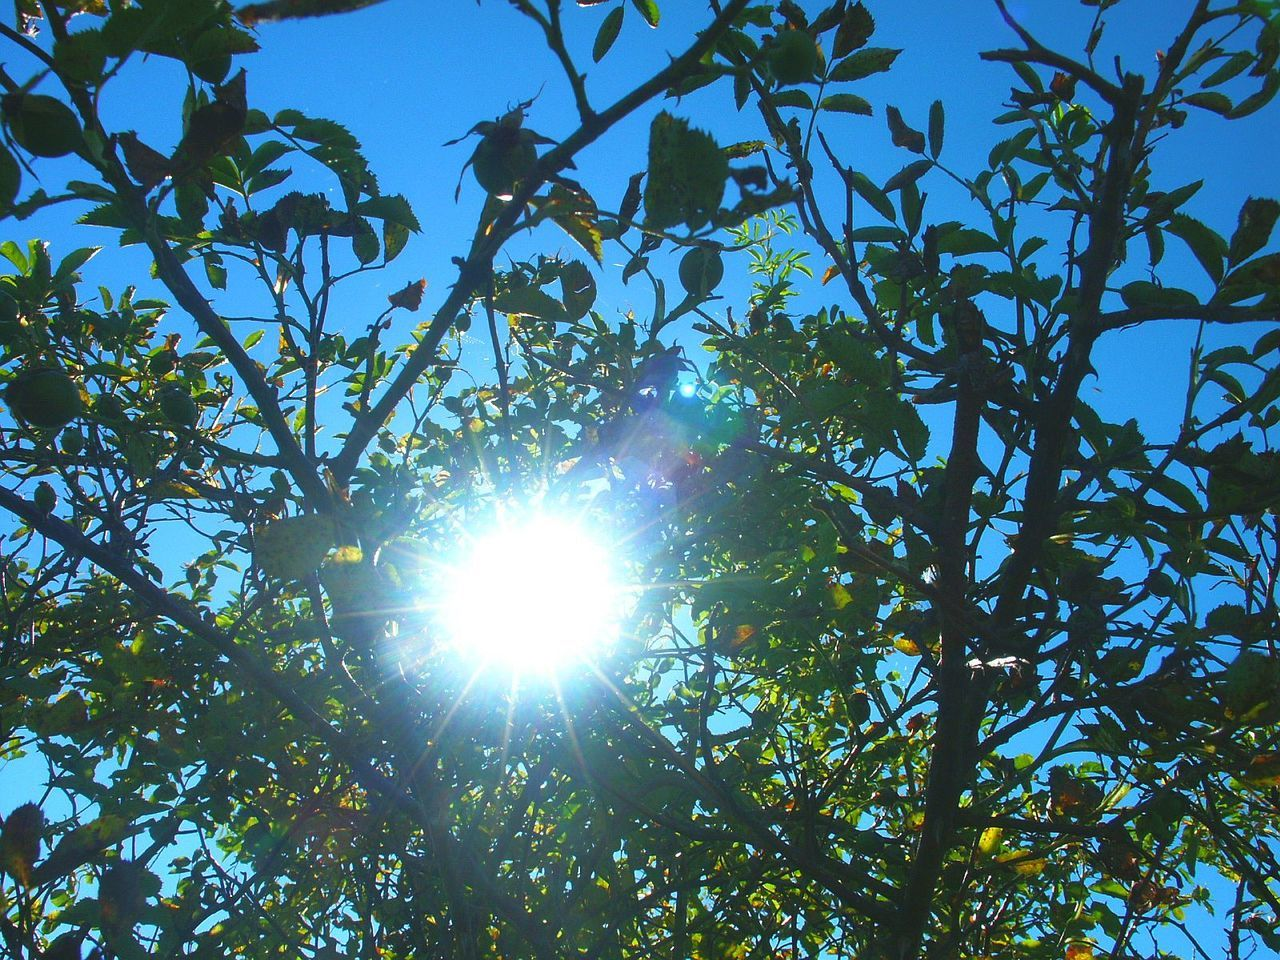 Beauty In Nature Blue Branch Bush And Light Clear Sky Day Freshness Growth Leaf Lens Flare Low Angle View Nature No People Outdoors Scenics Sky Sun Sunbeam Sunlight Tranquility Tree